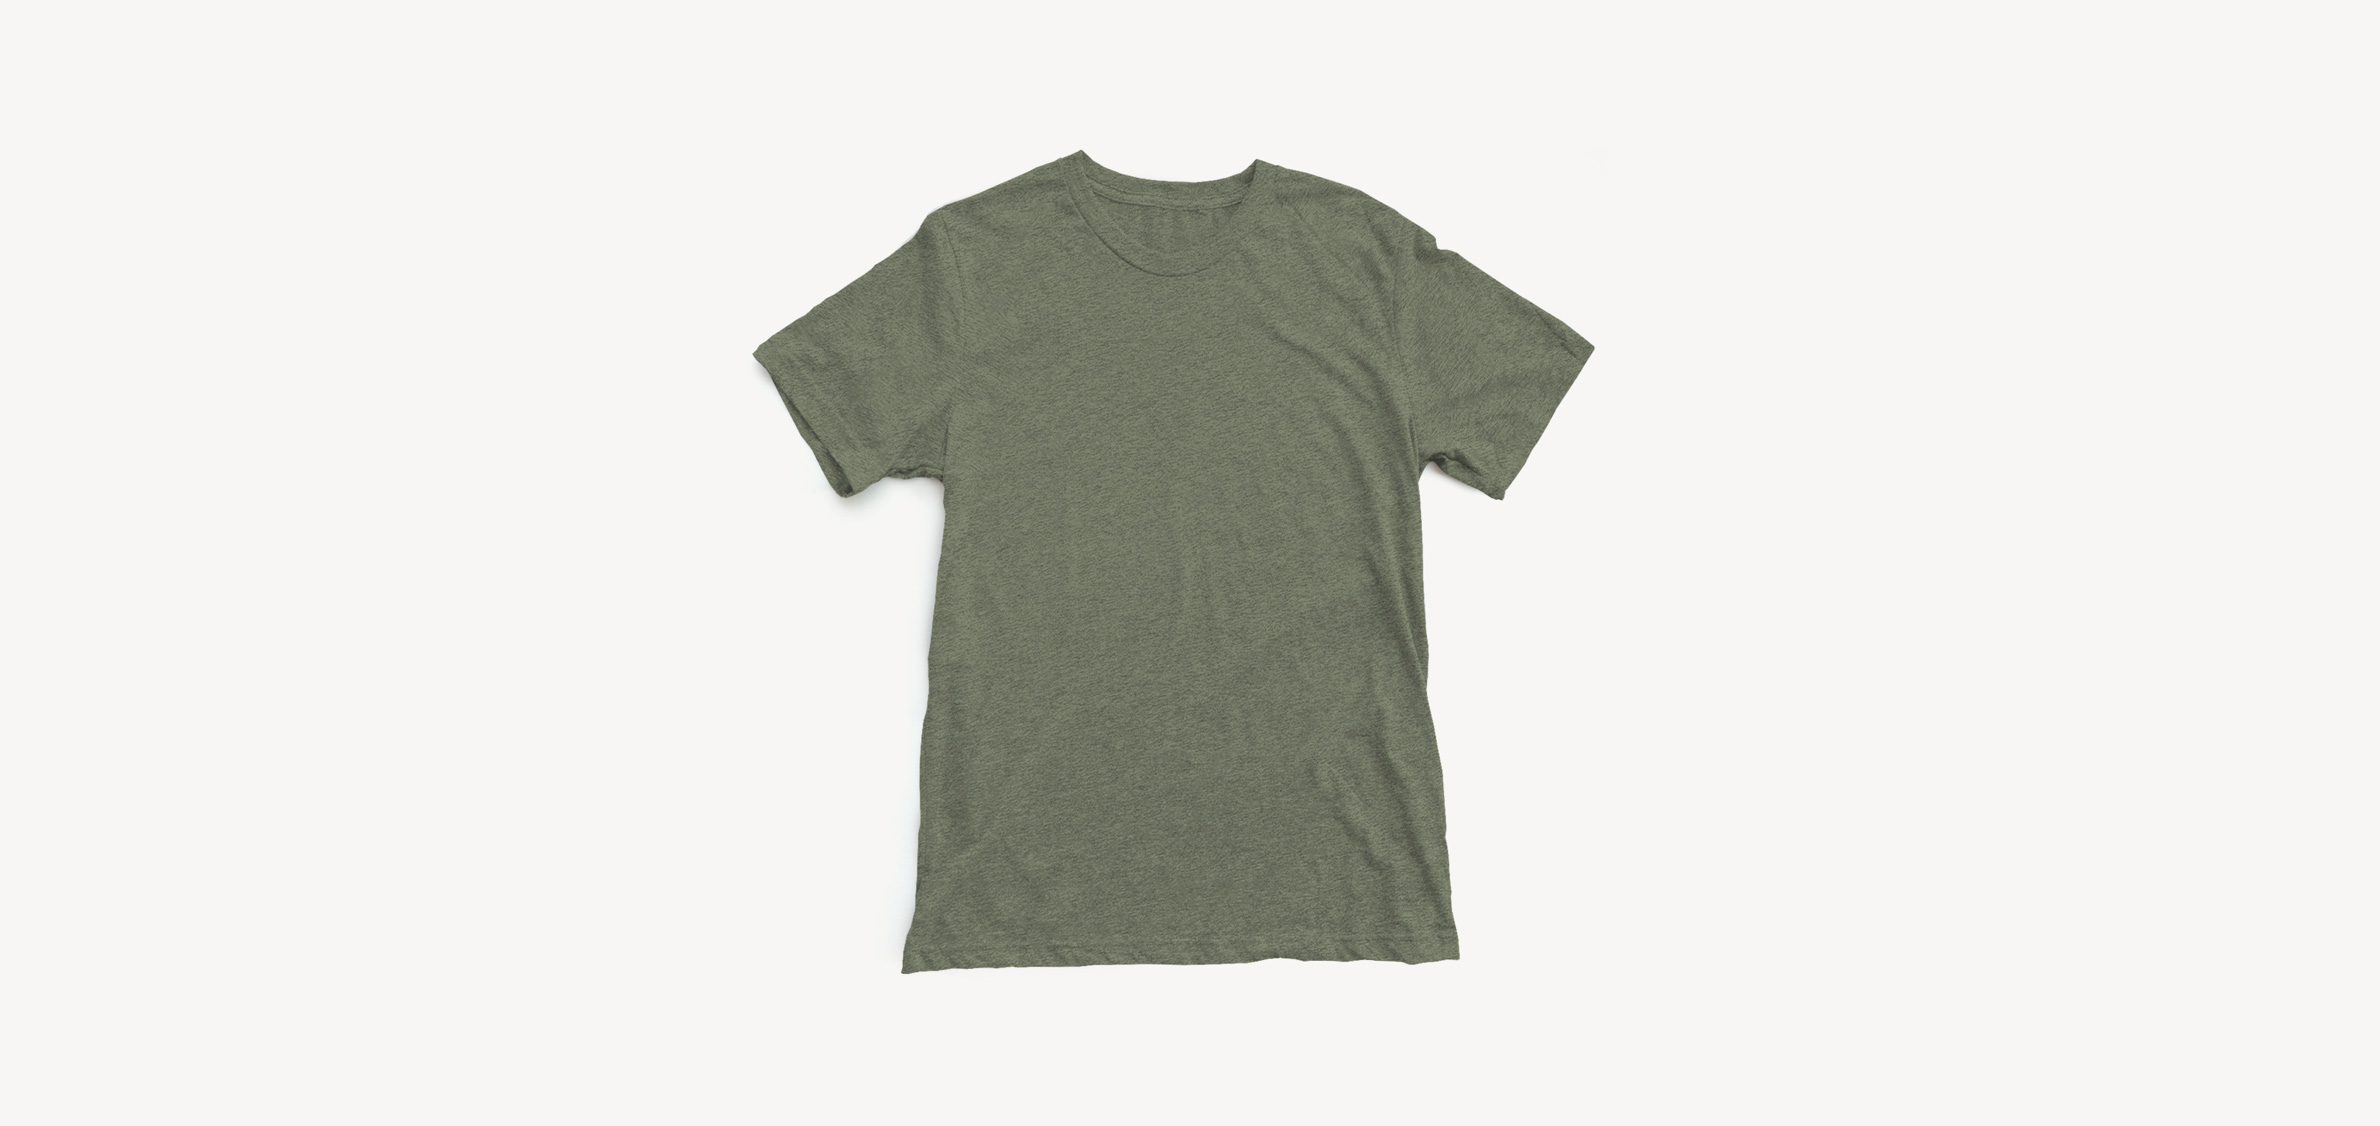 Our new Triblend Unisex Tee